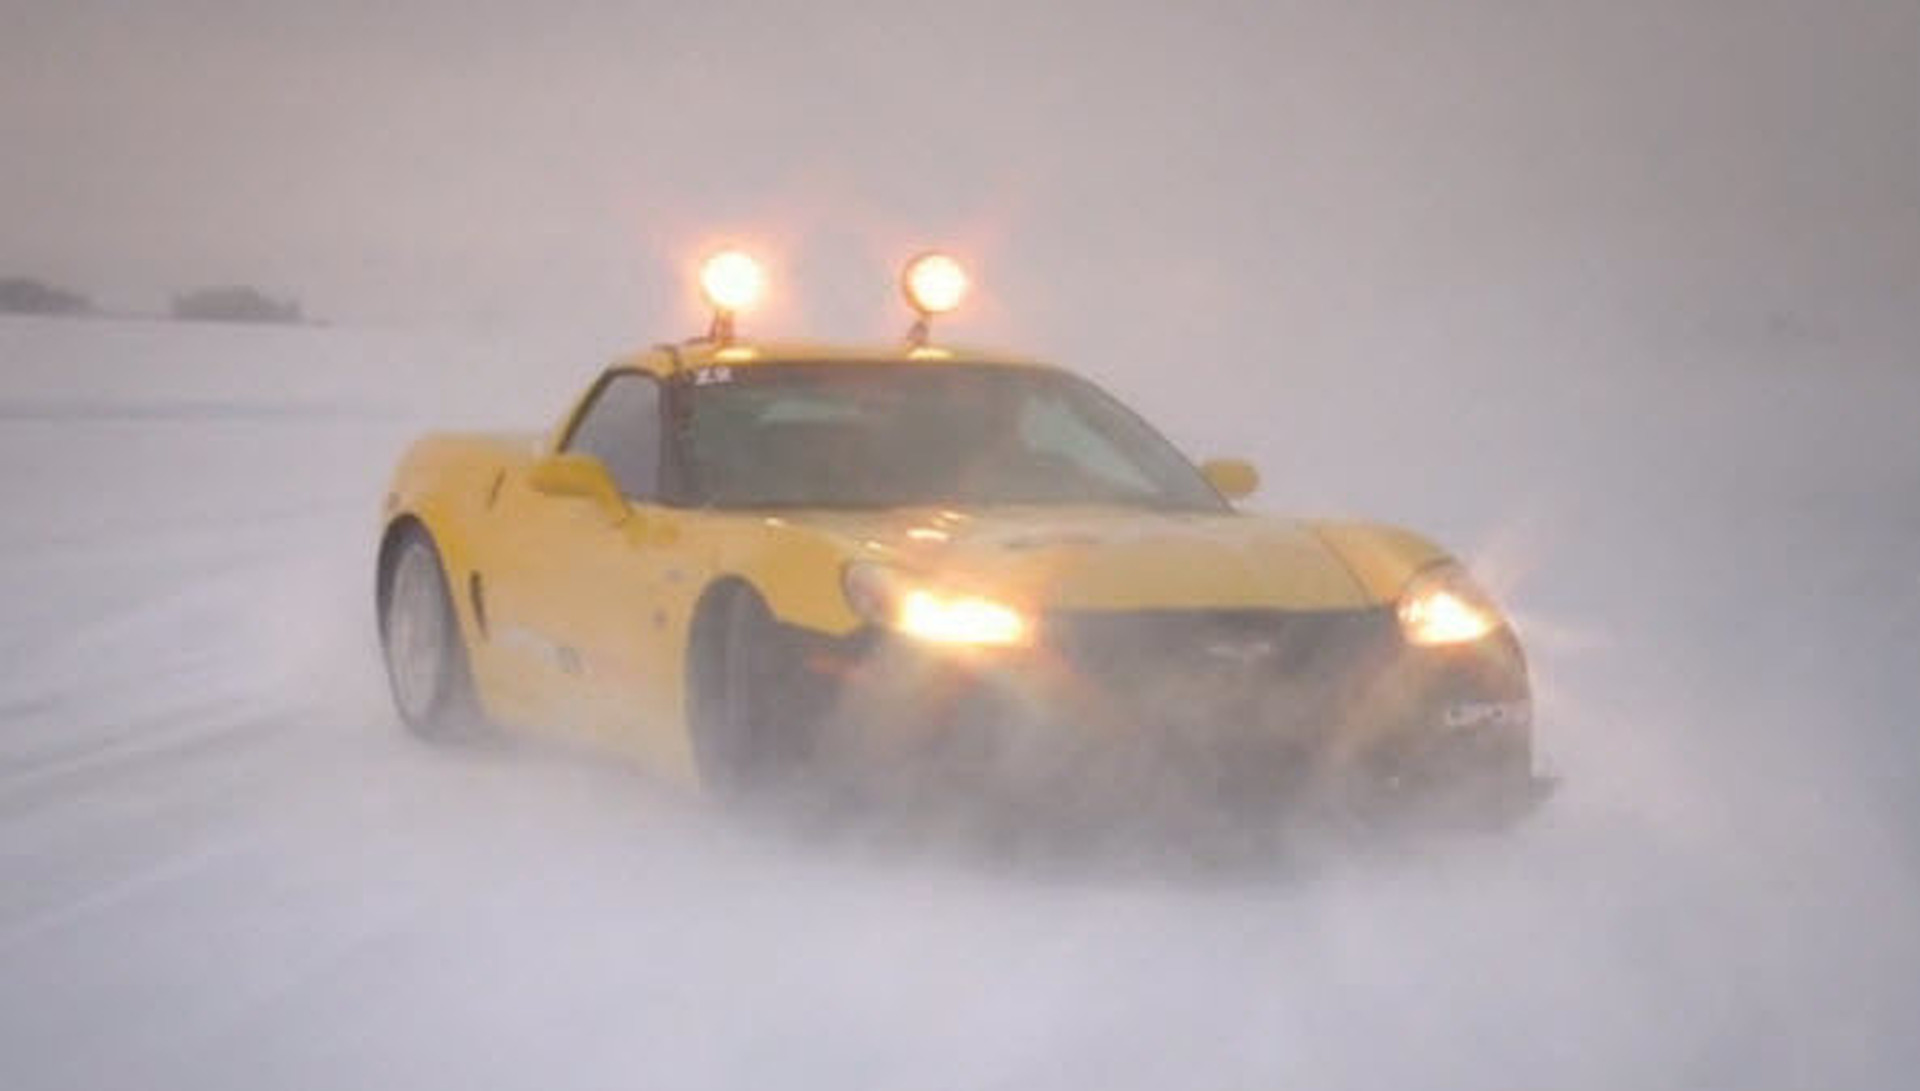 Our Top Tips for Winter Driving